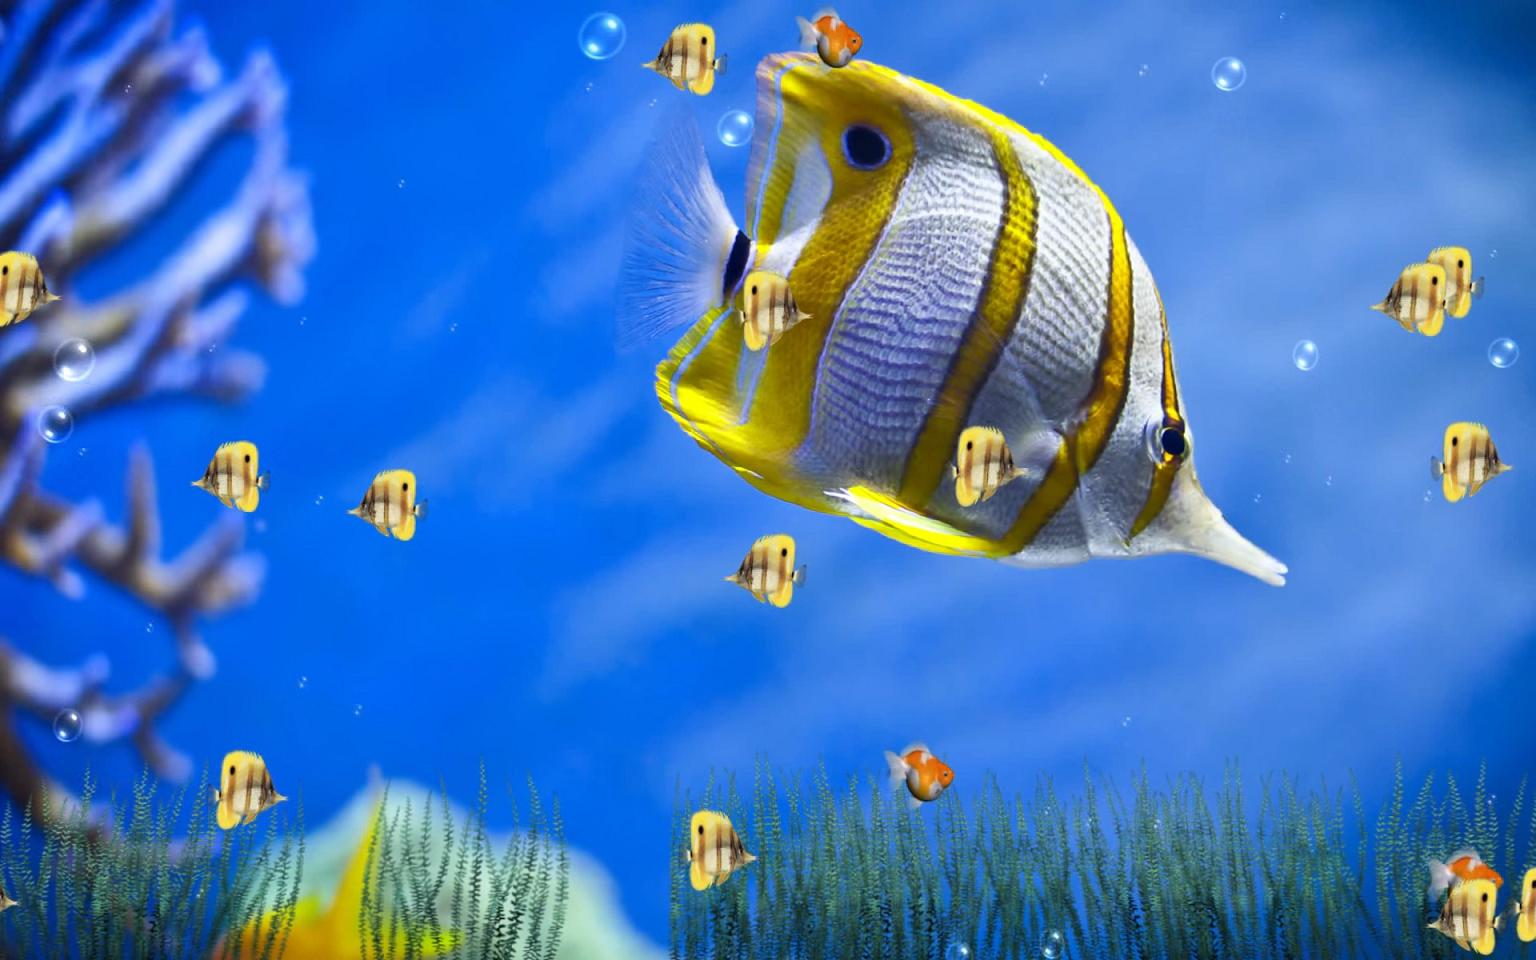 Marine life aquarium animated wallpaper download